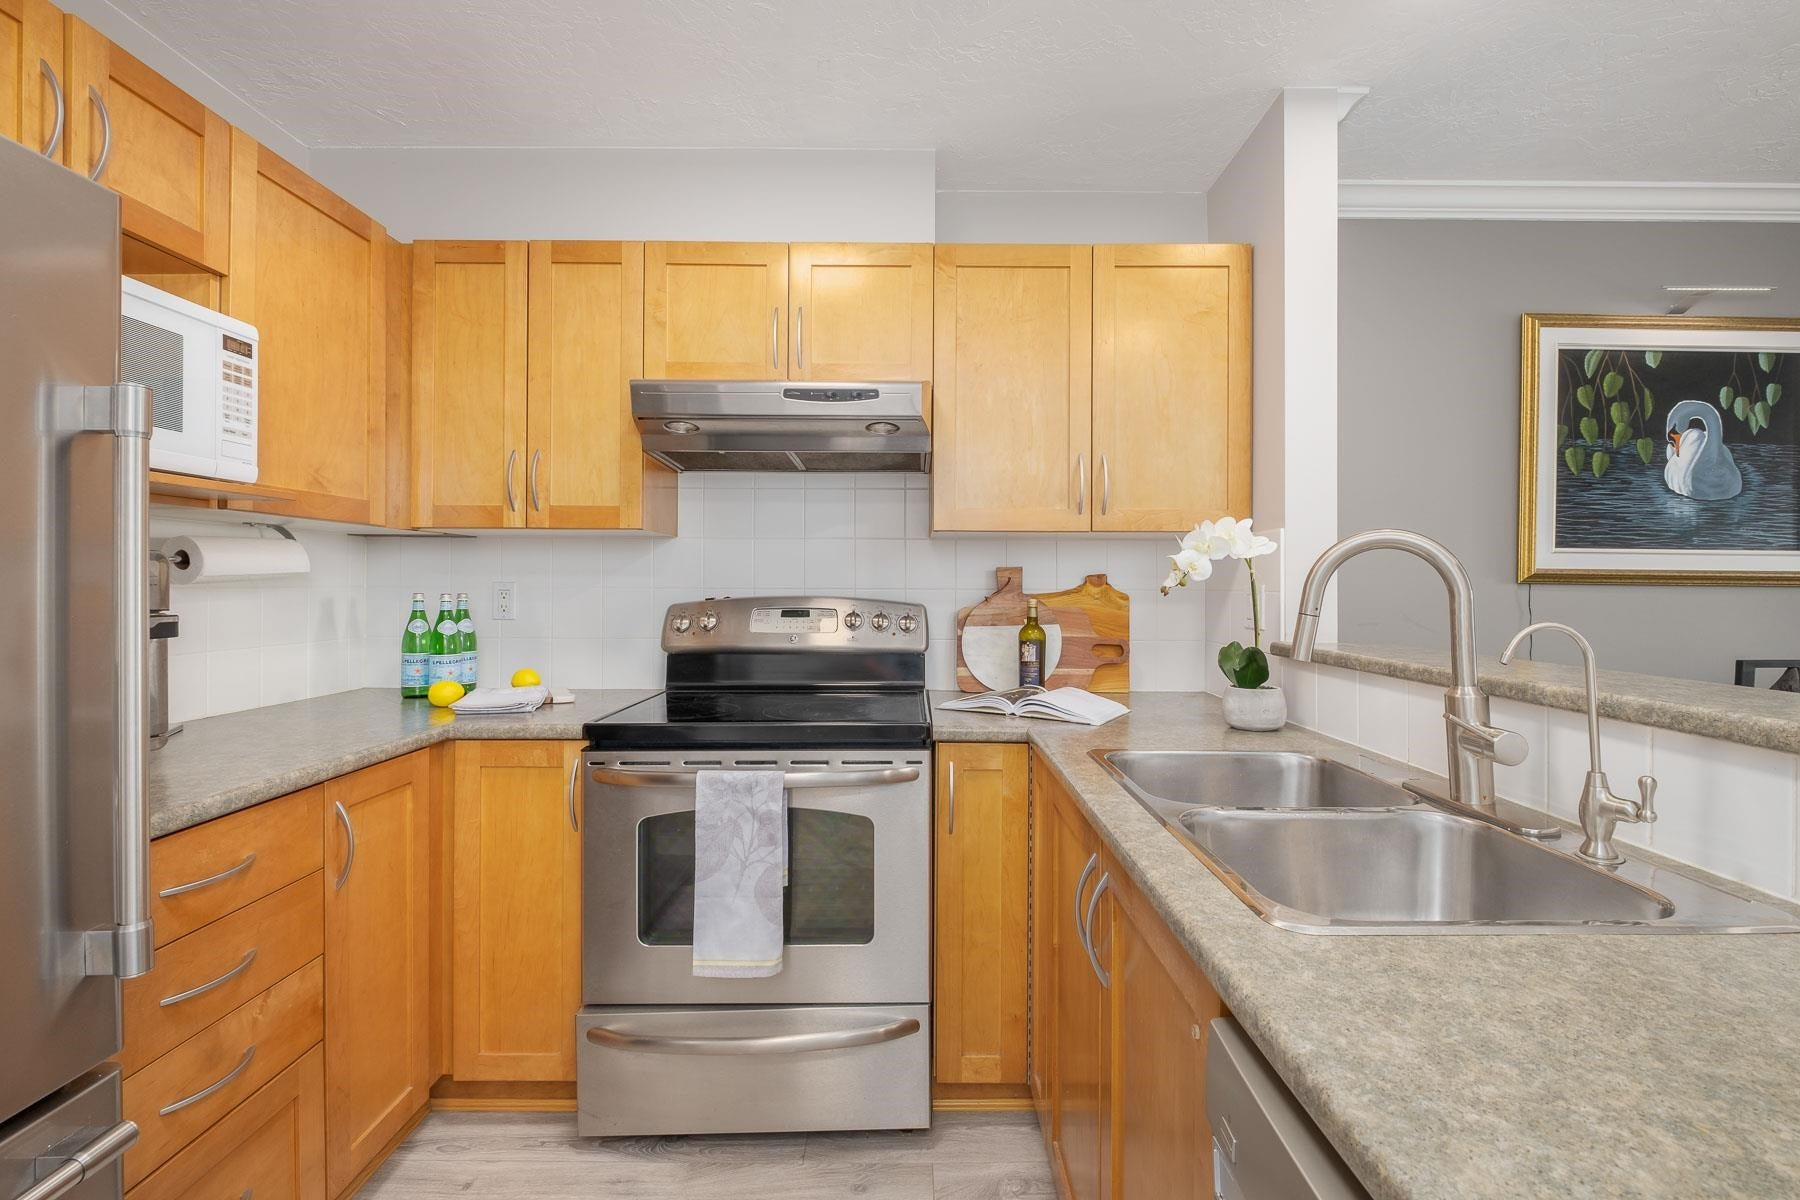 205 333 E 1ST STREET - Lower Lonsdale Apartment/Condo for sale, 1 Bedroom (R2618010) - #17